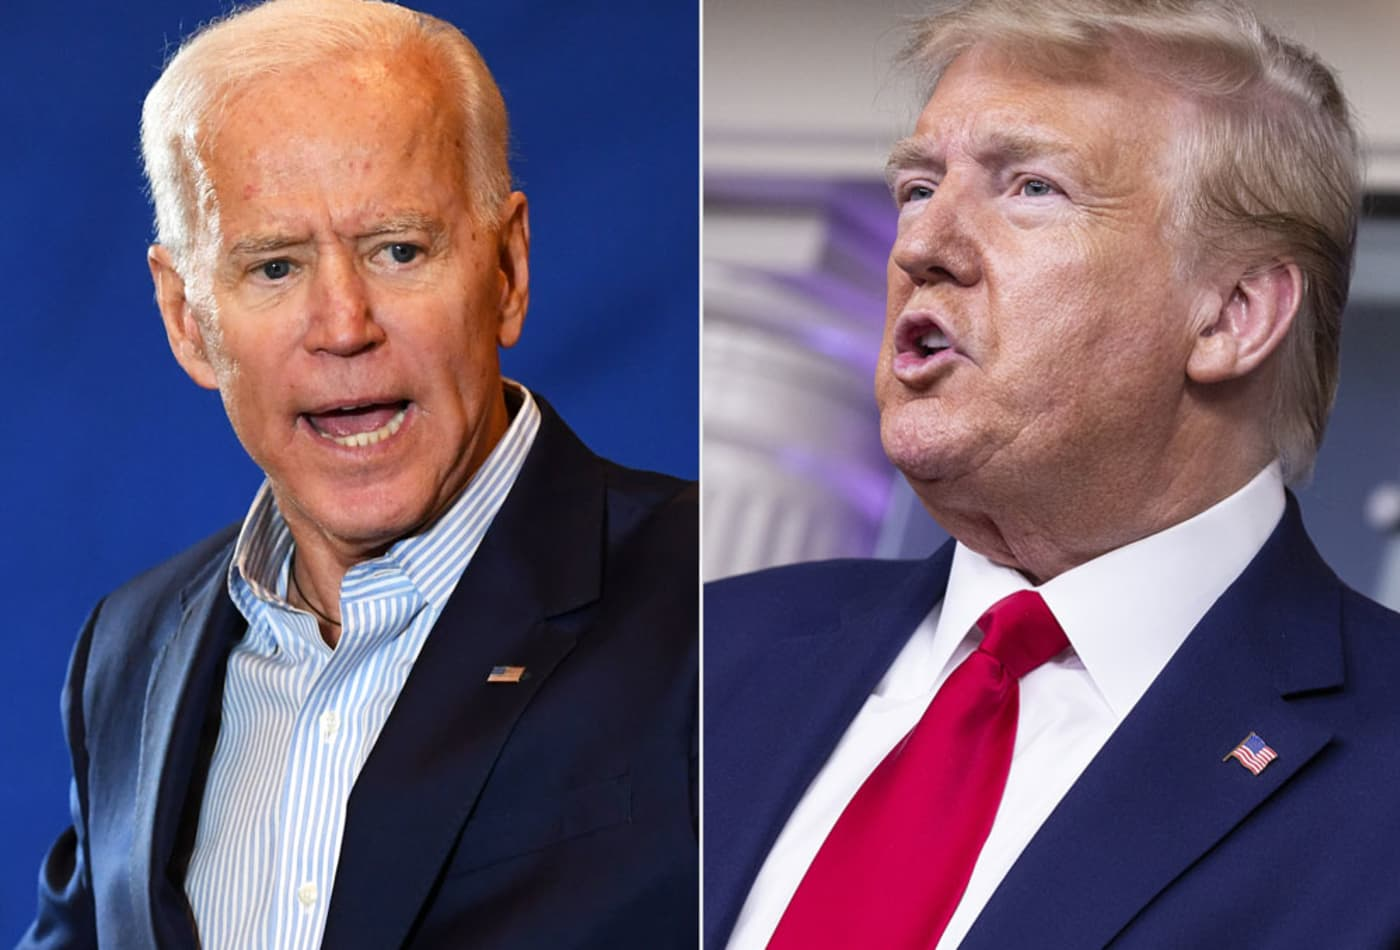 Biden vs. Trump: What their policies mean for your money